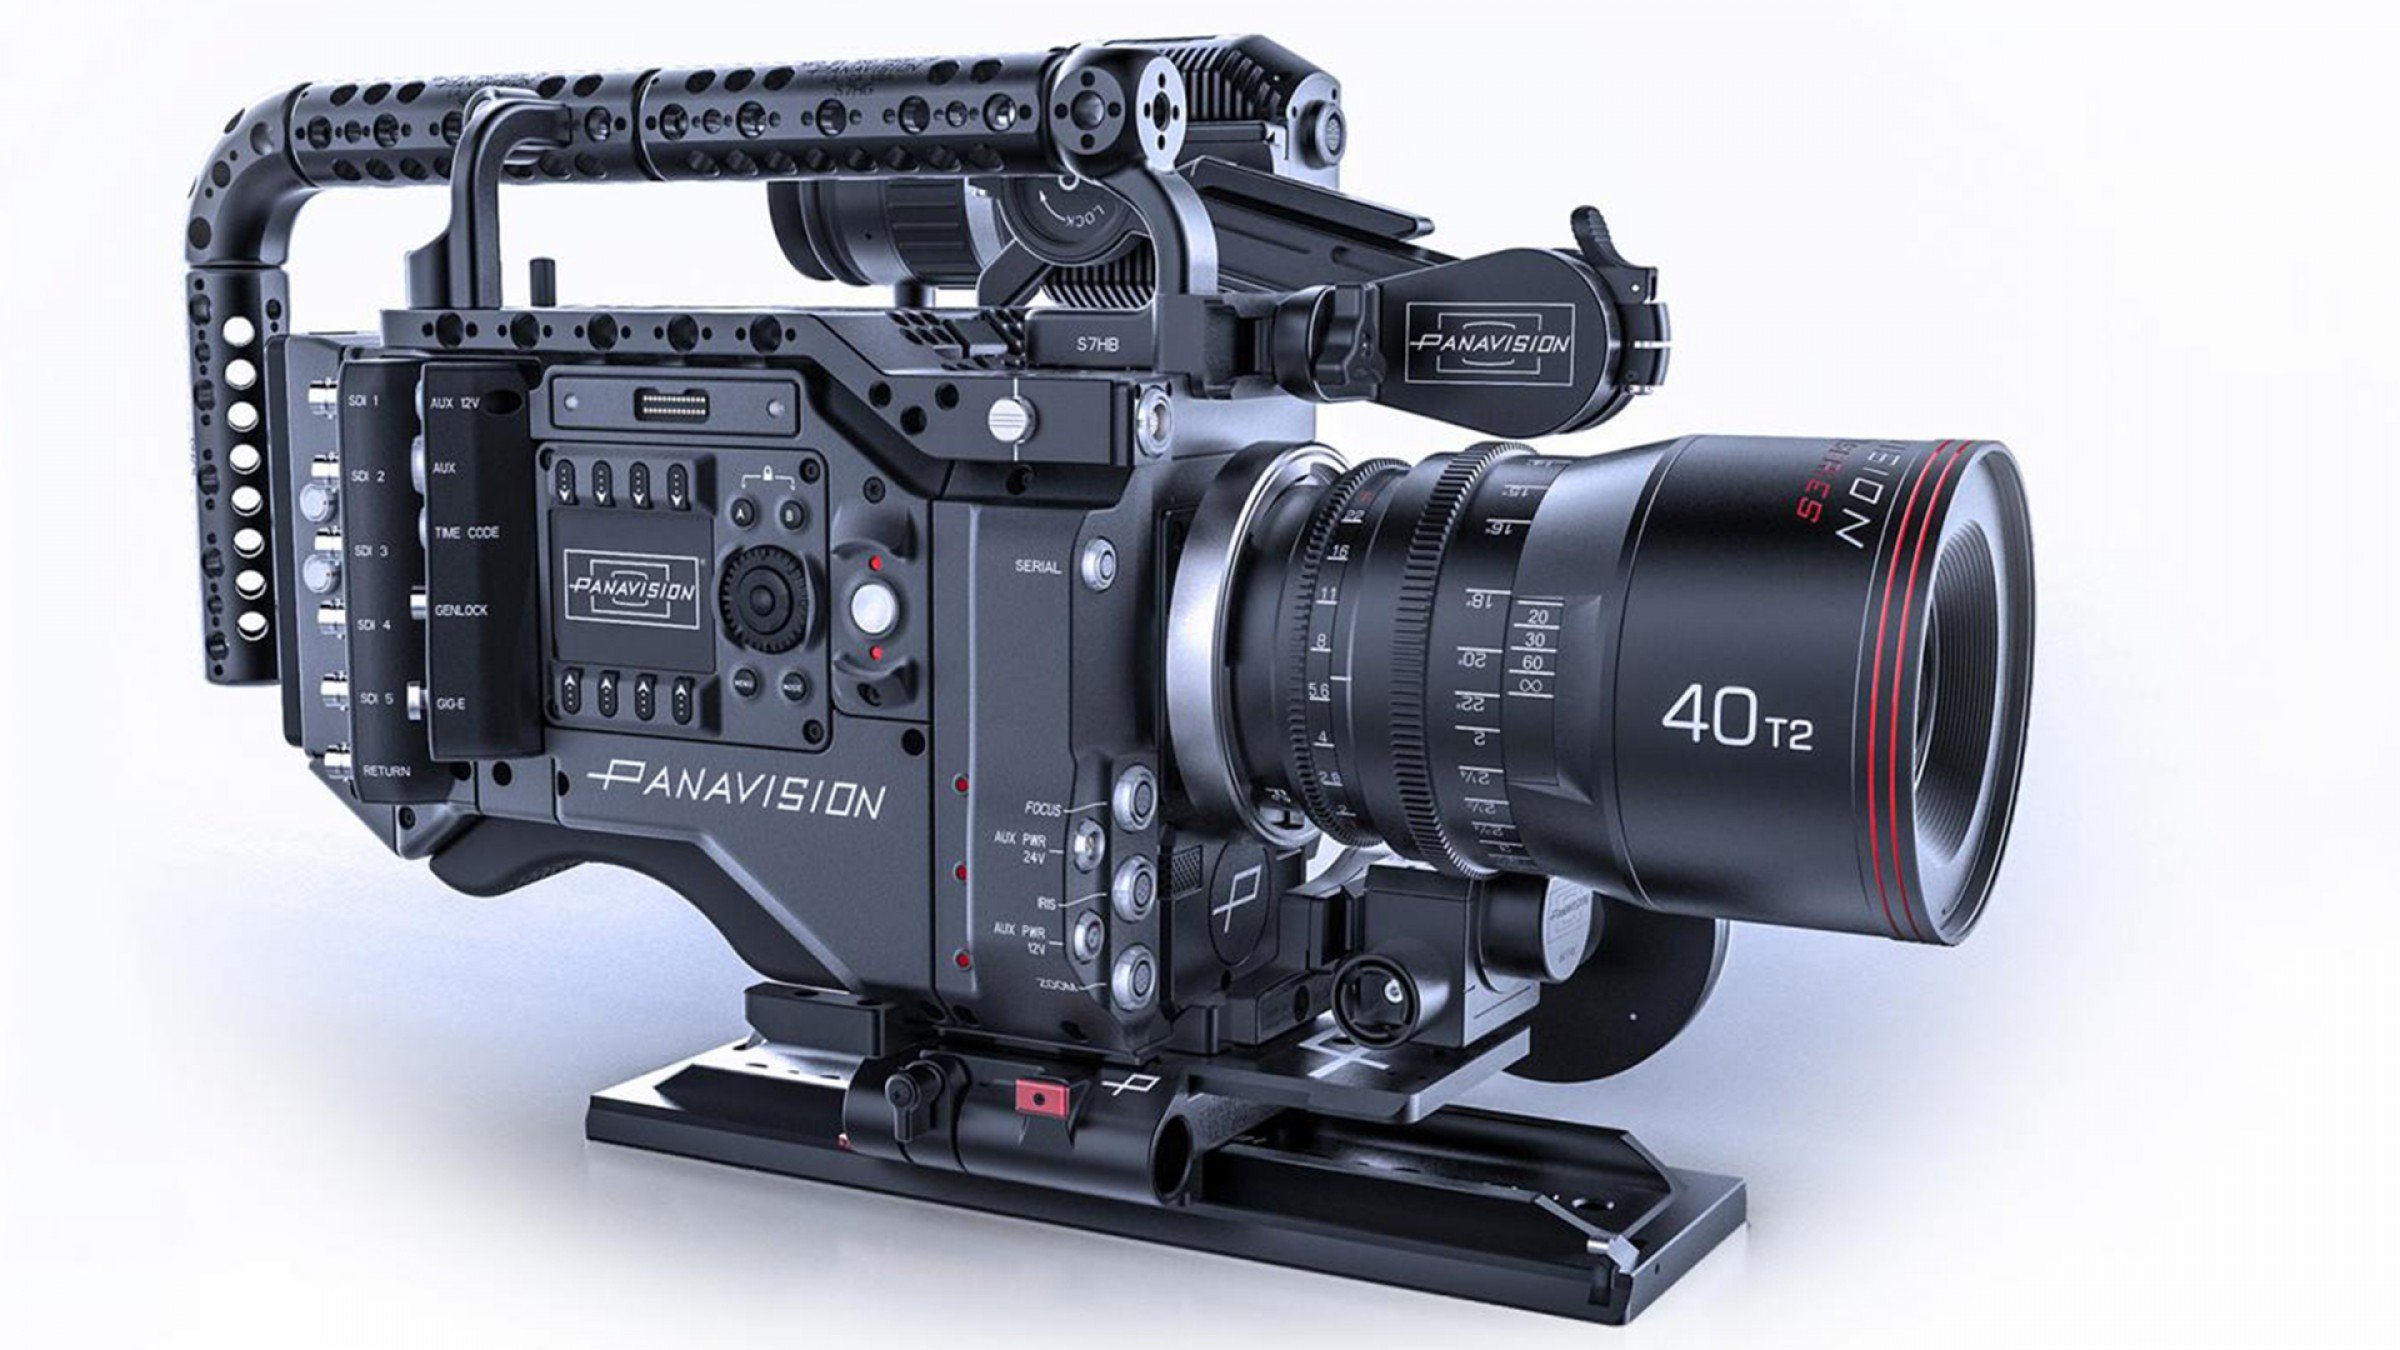 a2f74dda394 Panavison Co-Builds the World s Most Advanced Camera  8K RAW DXL Cinema